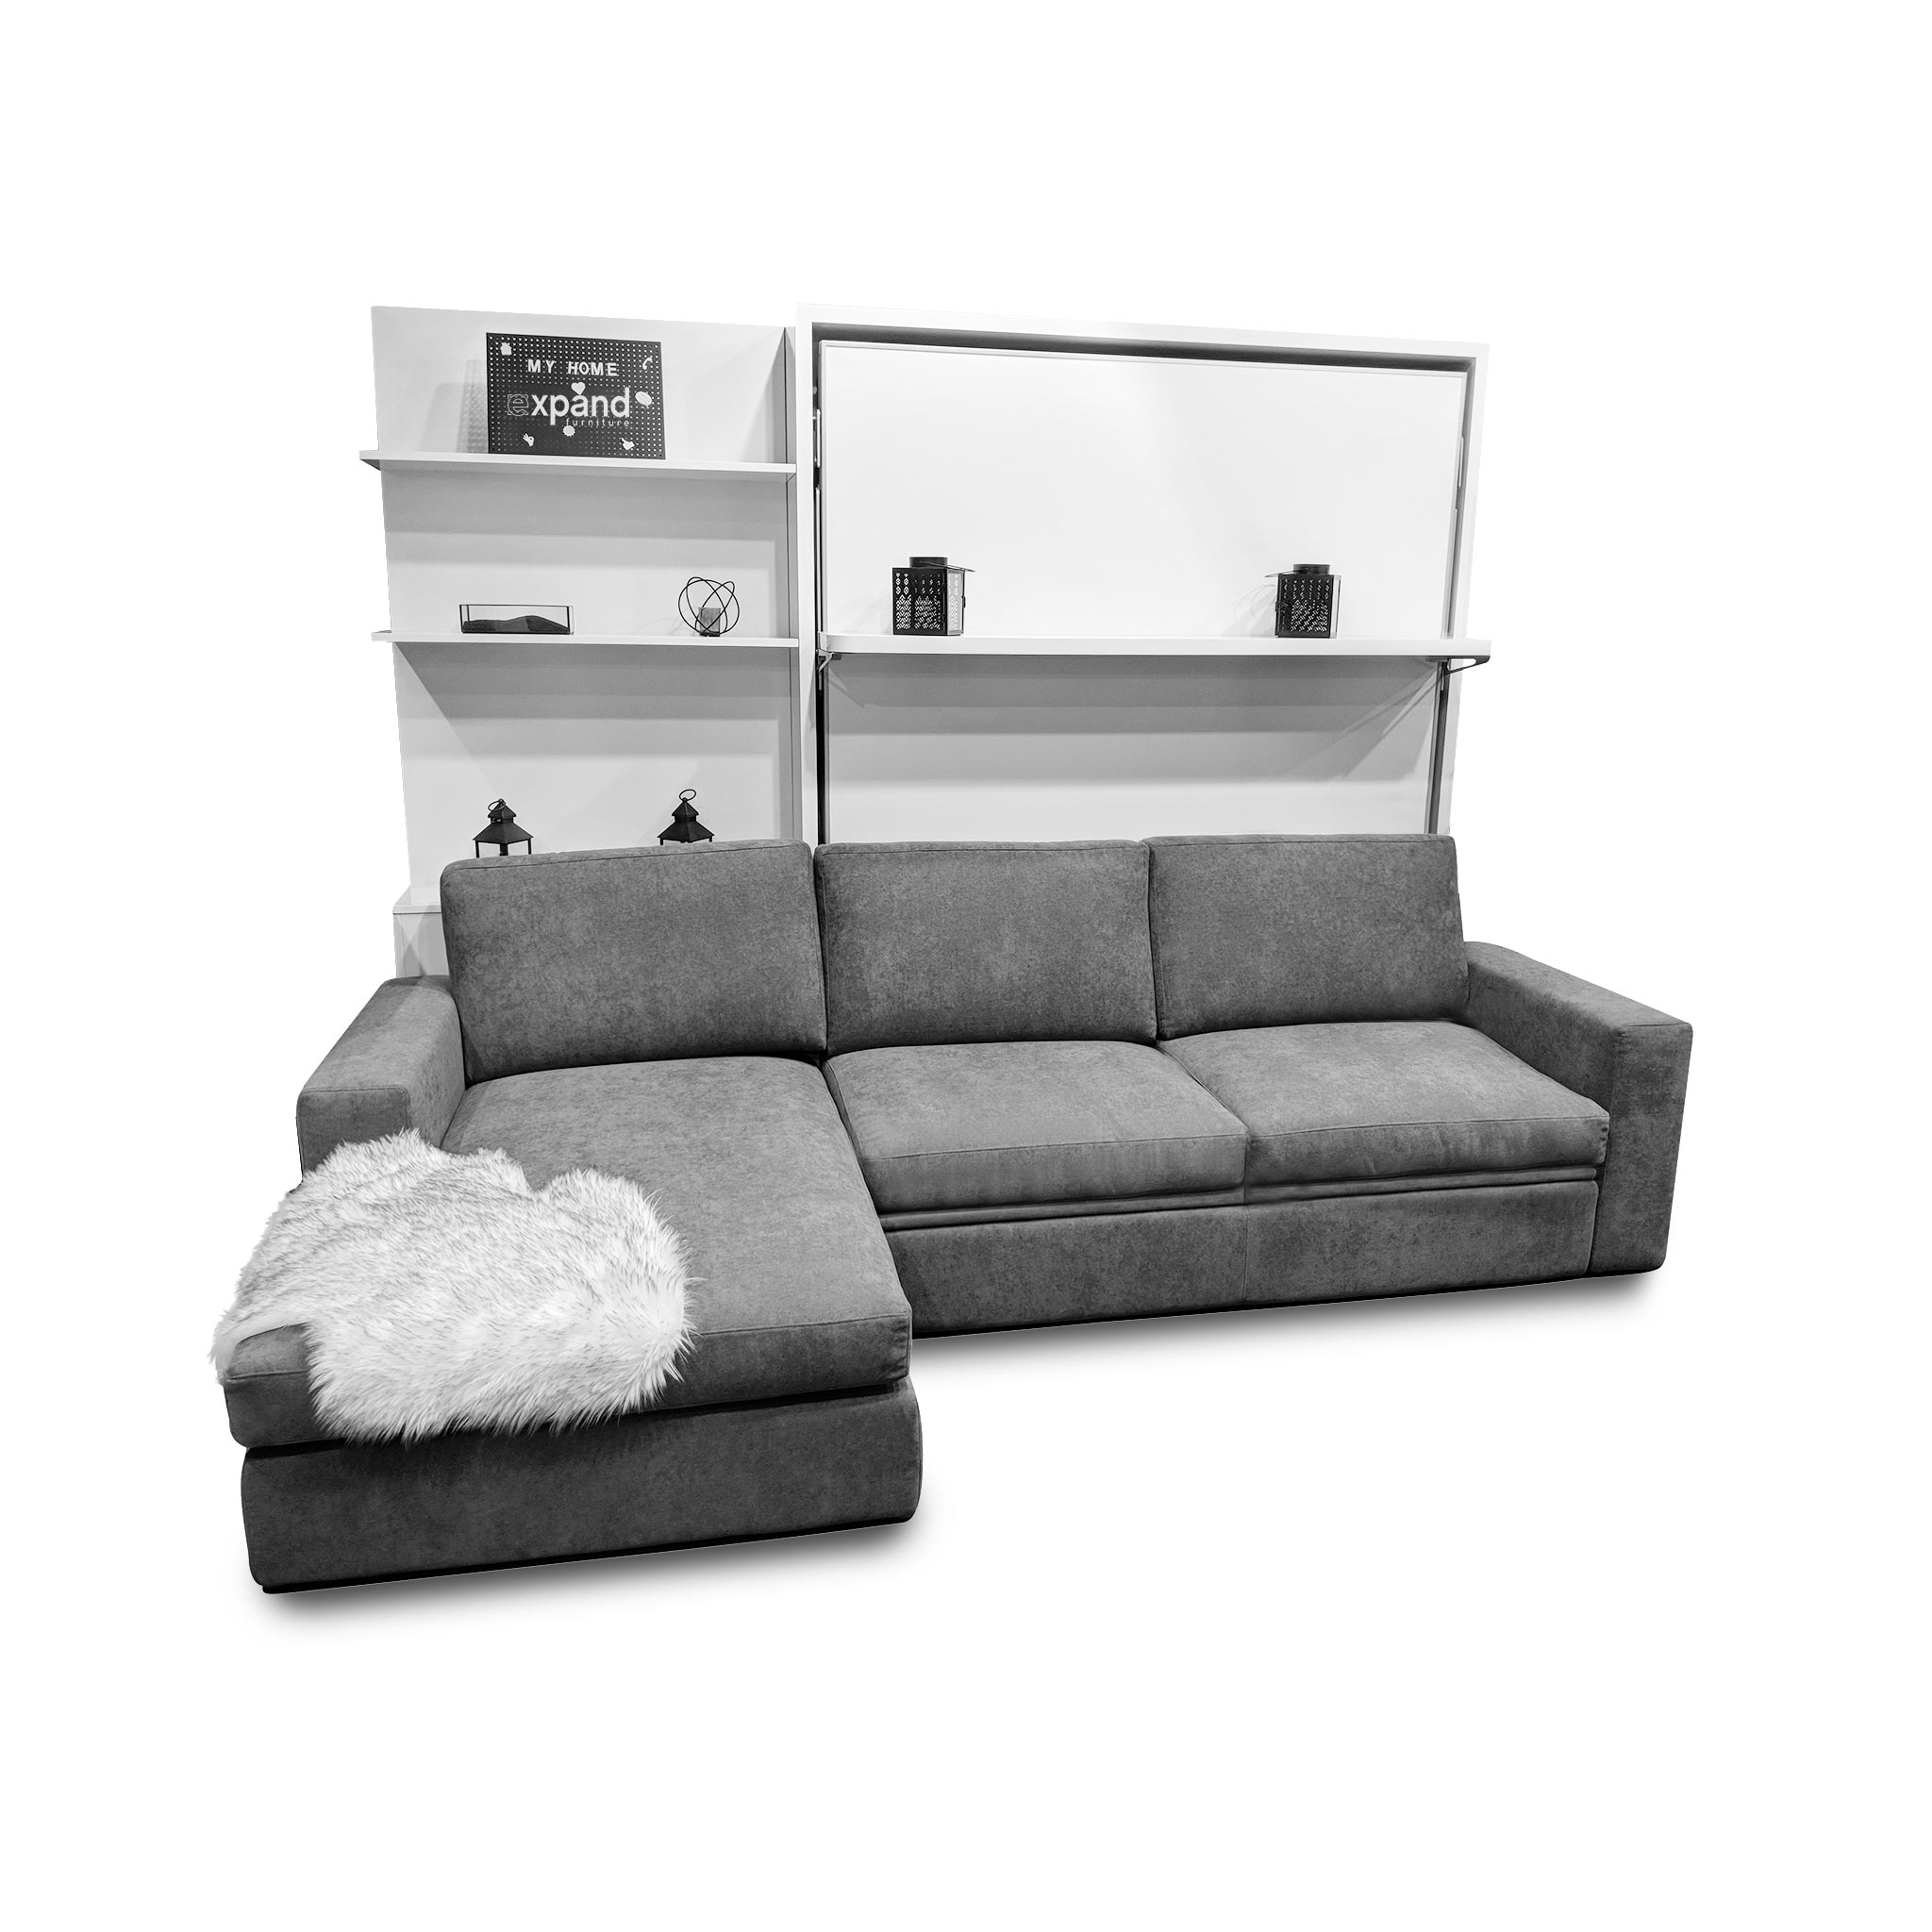 Amazing Compatto Shelf Wall Bed Over Sectional Sofa Pabps2019 Chair Design Images Pabps2019Com